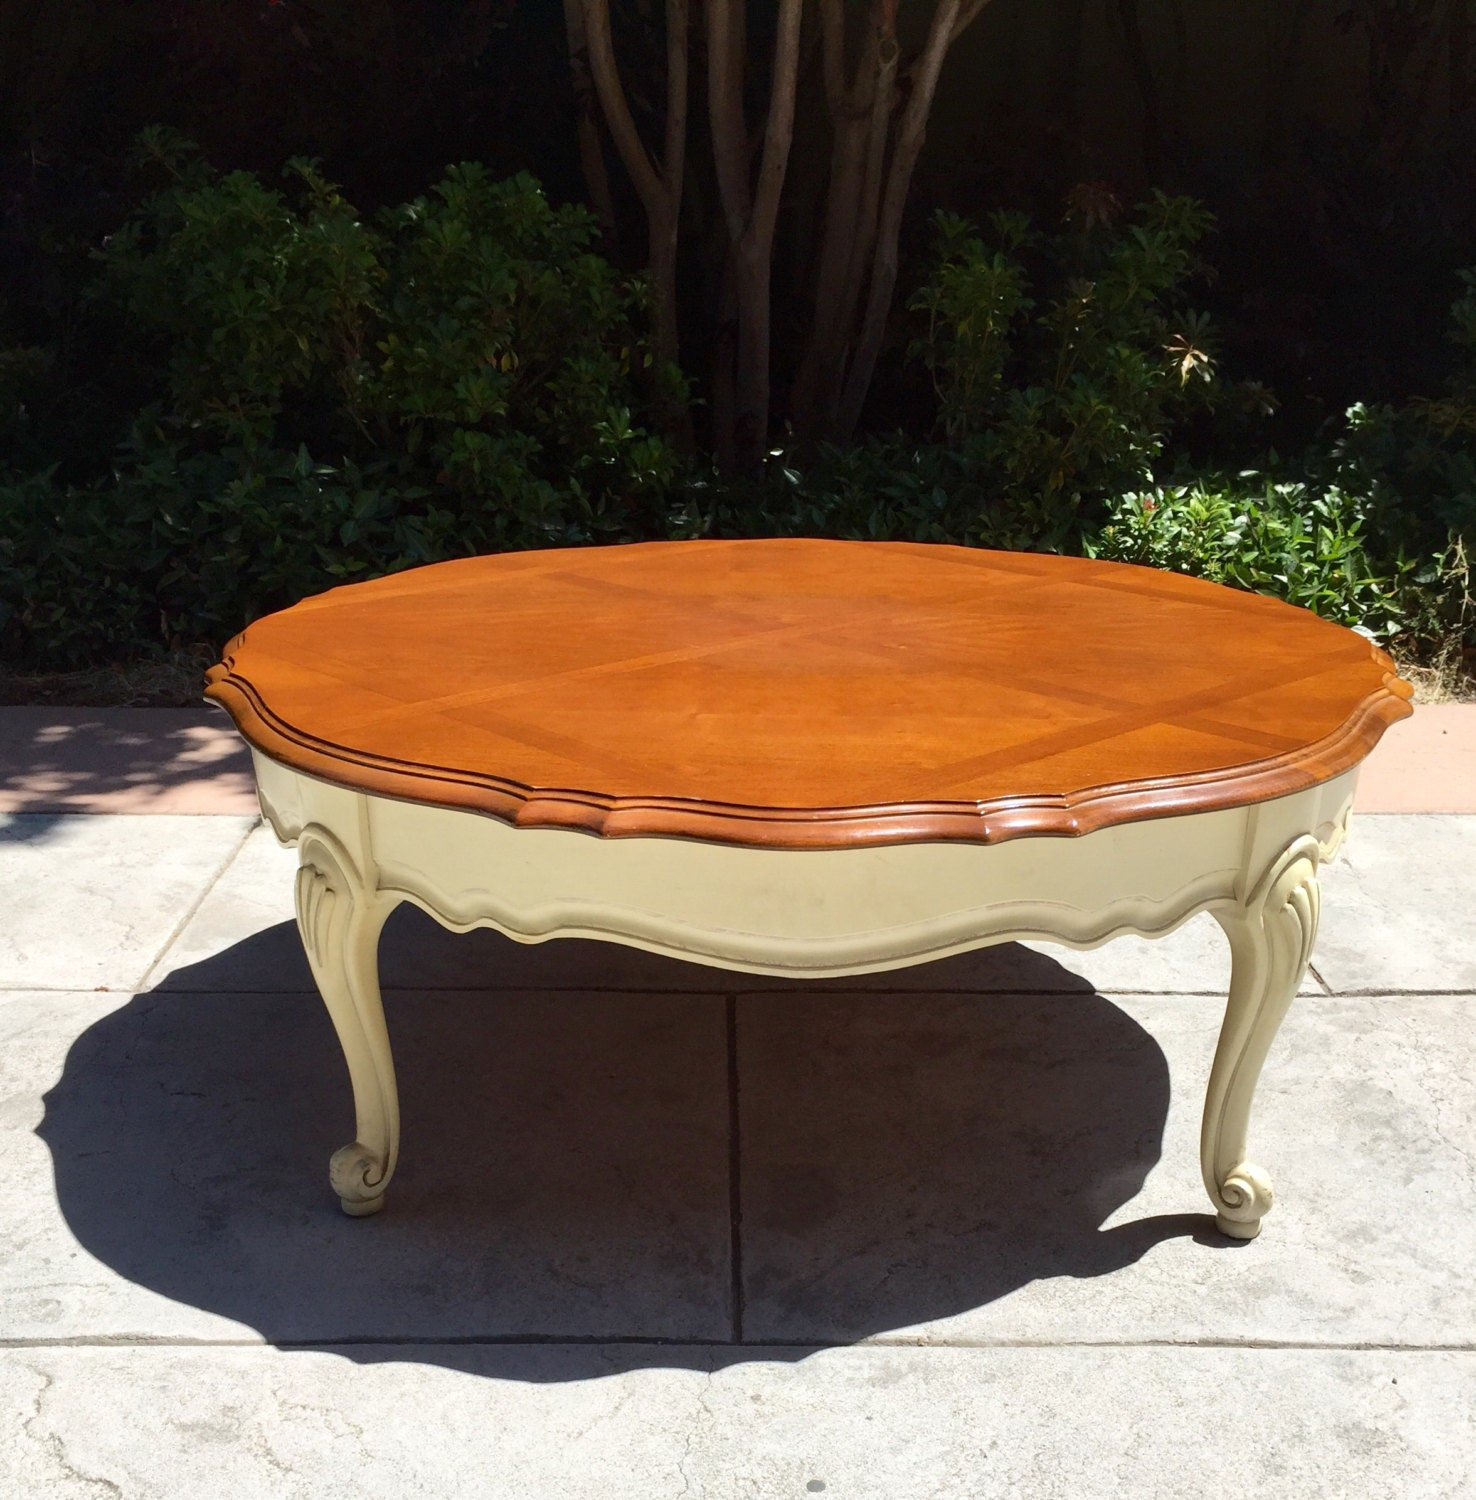 French Provincial Oval Coffee Table: French Provincial Round Antique Scalloped Two Tone Wood